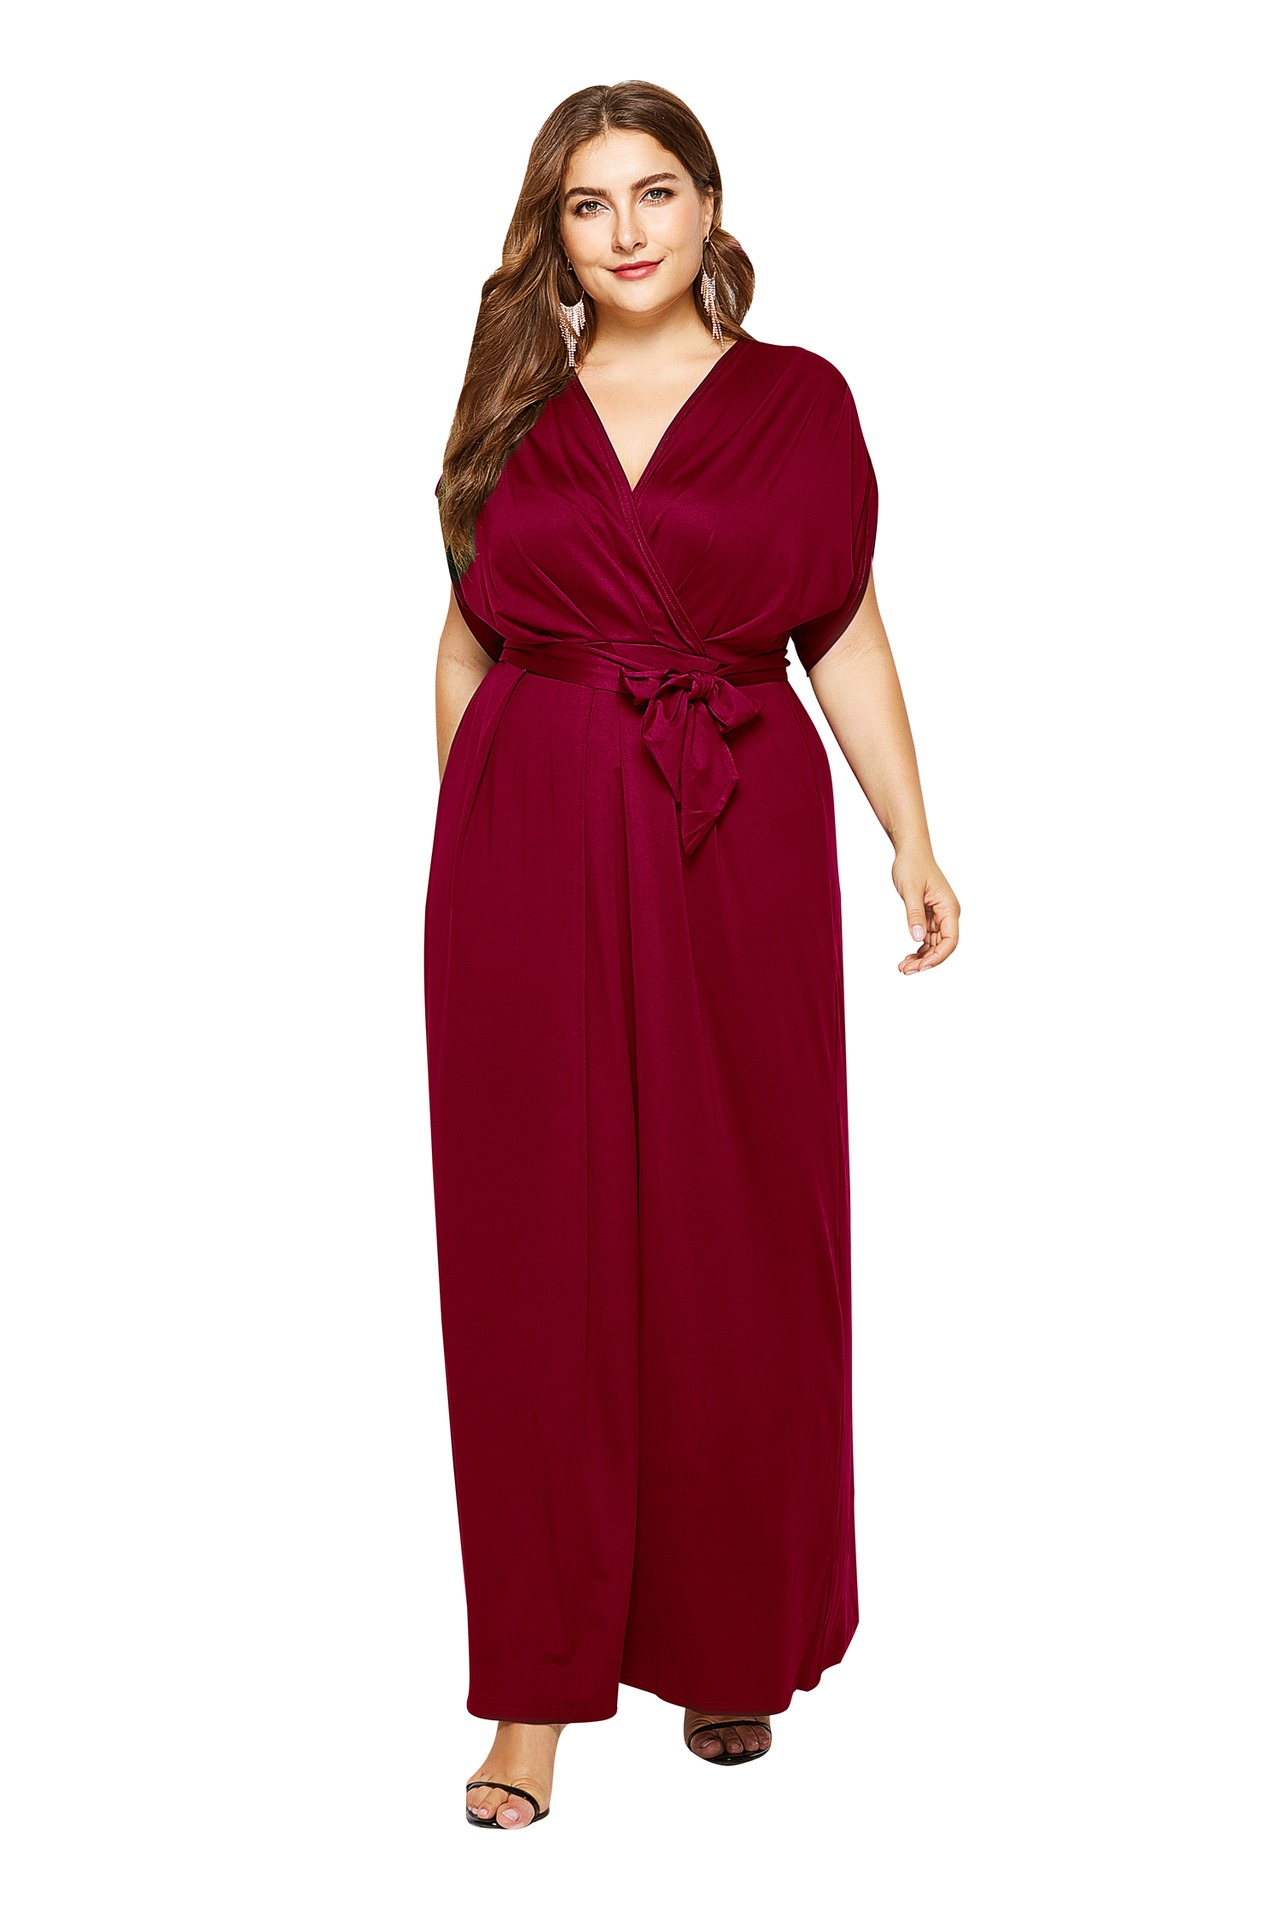 Ericdress Short Sleeve Ankle-Length V-Neck Casual Pullover Plusee Dress